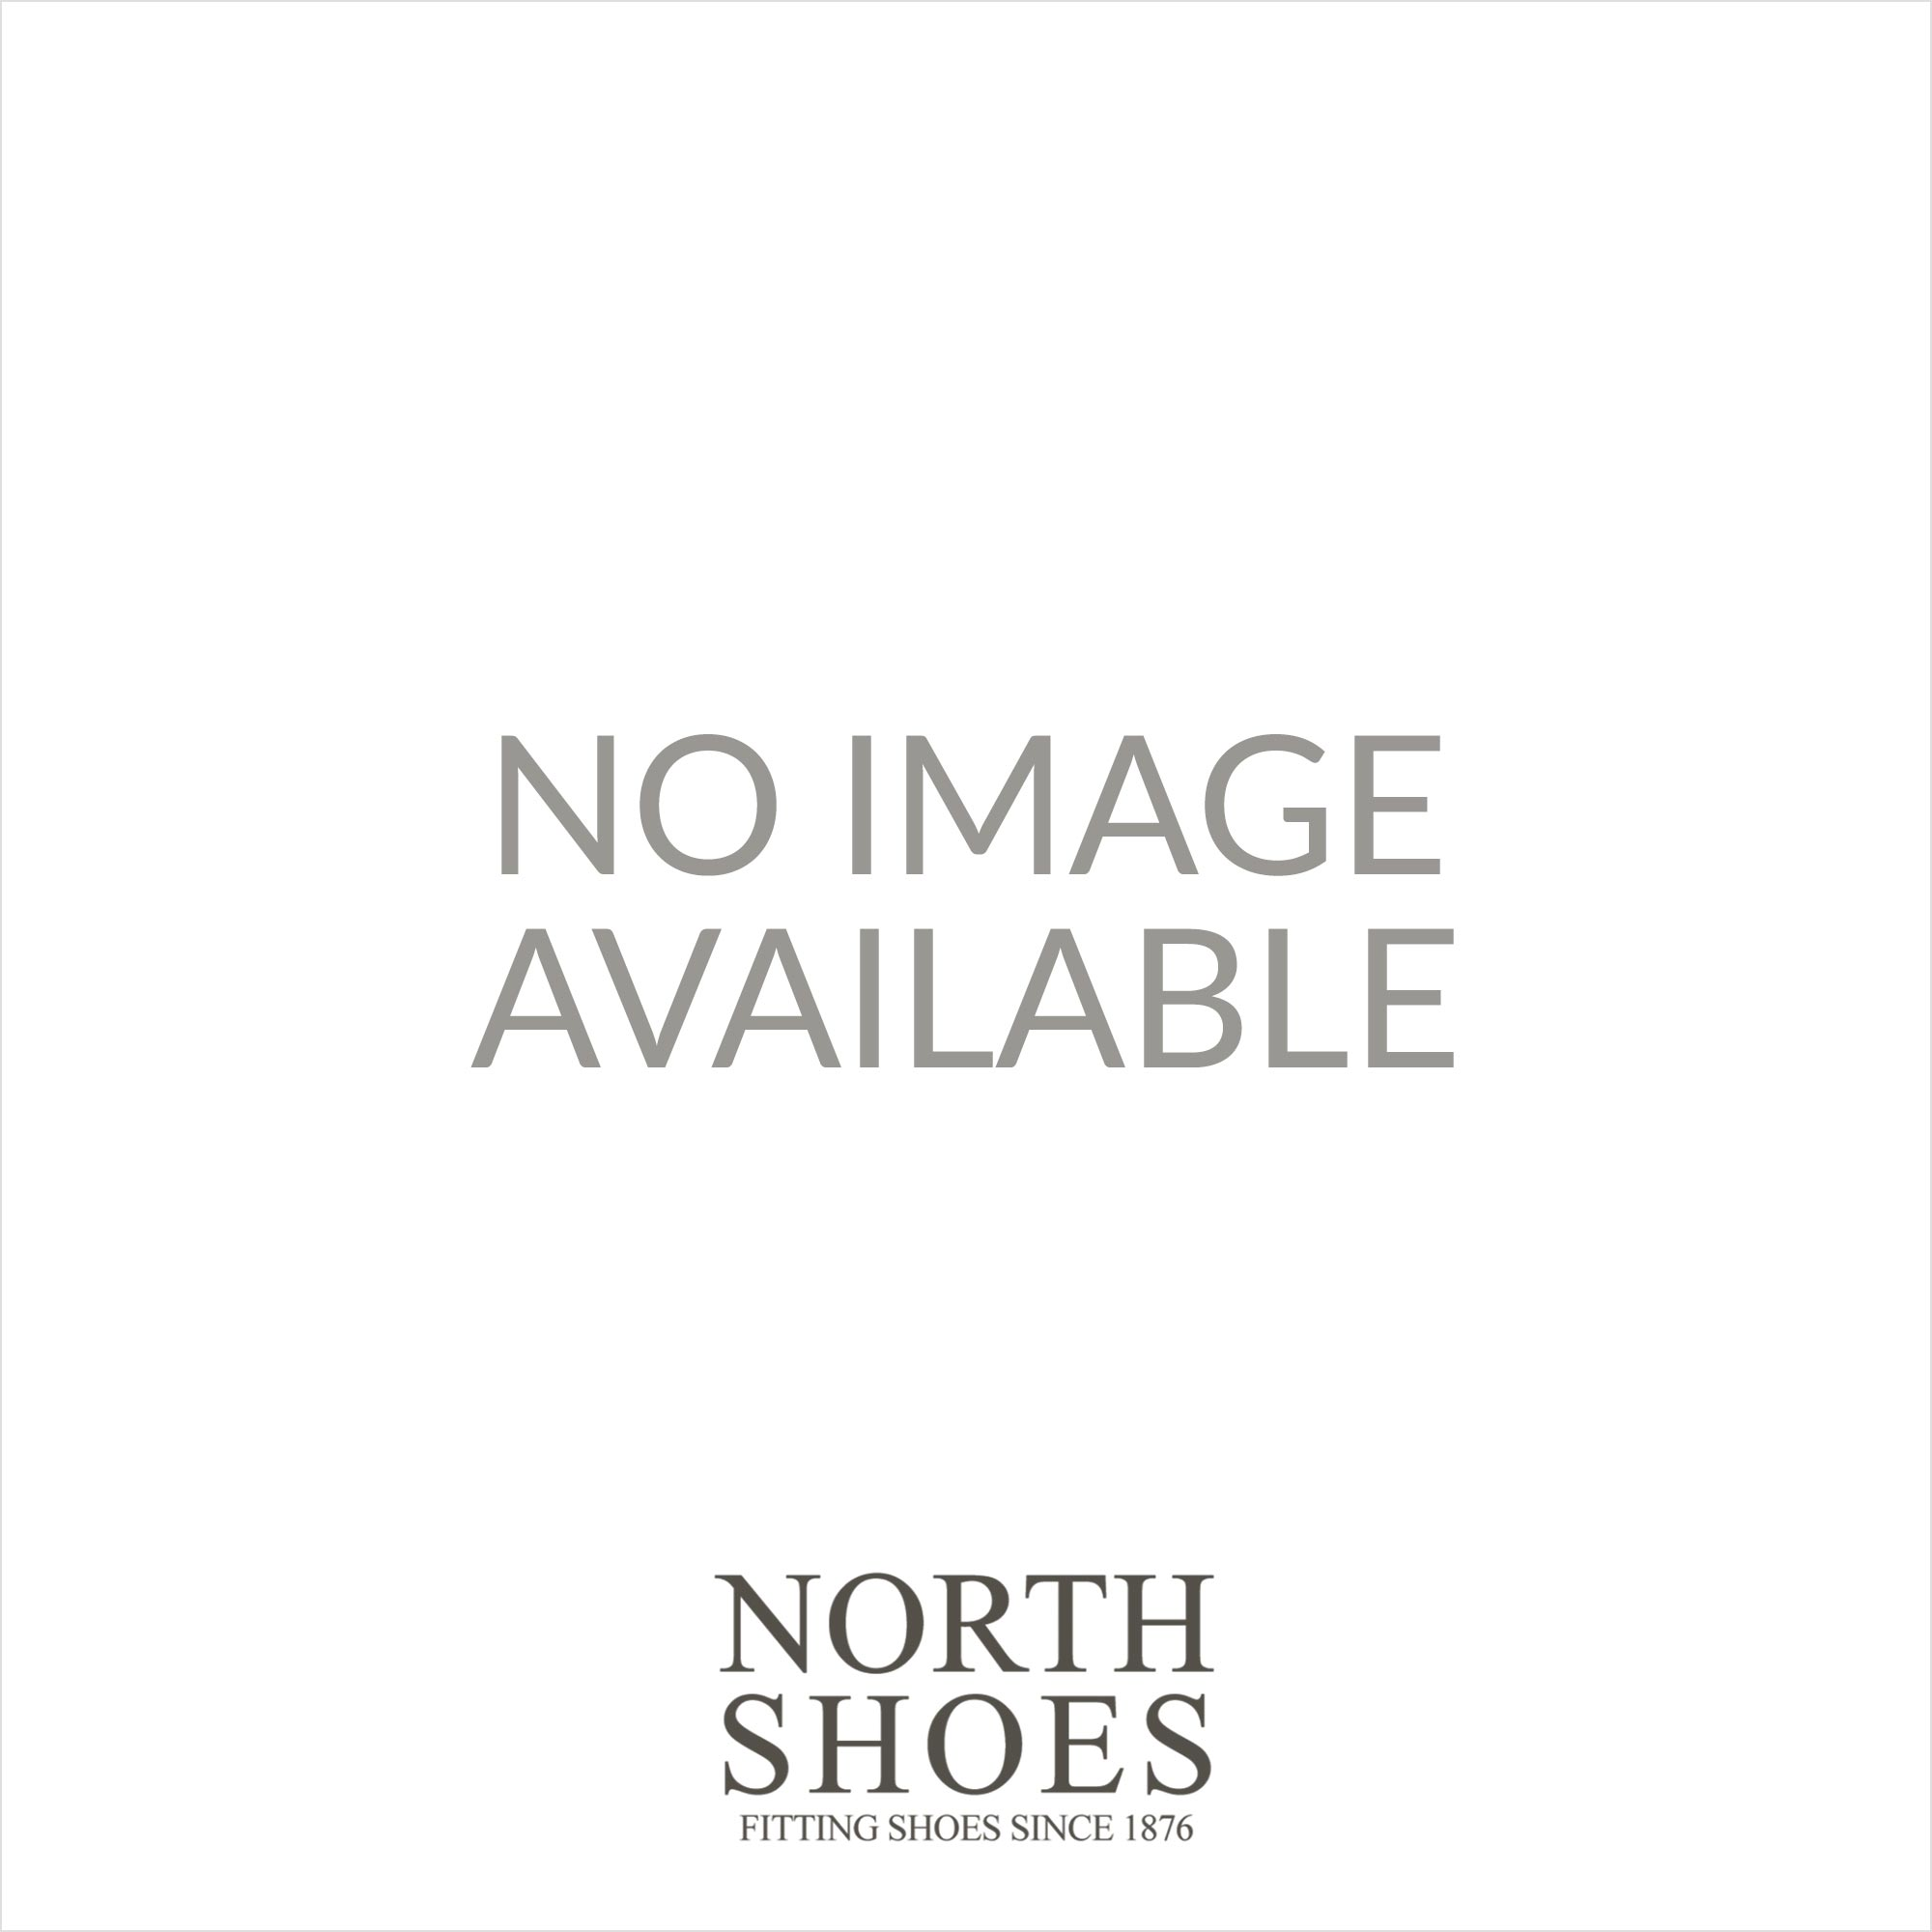 7784b0028 Epworth 641-20 Multi Coloured Flowers Textured Leather Womens Wedge Slip On  Shoes